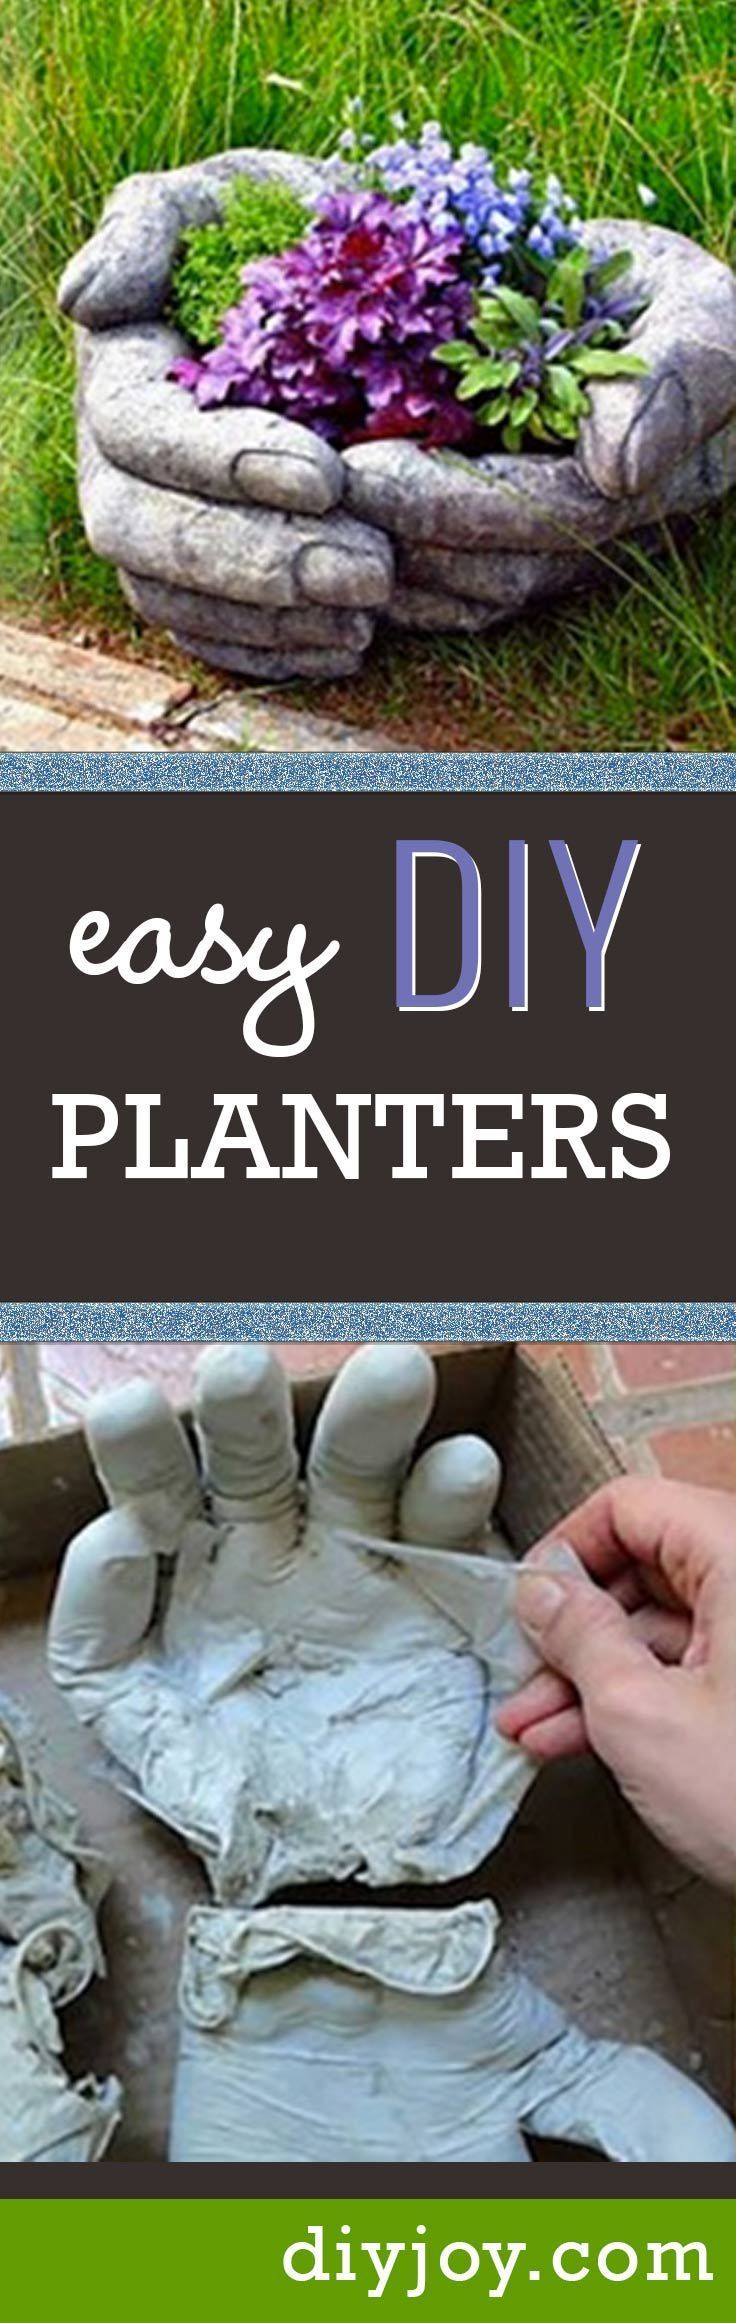 These diy concrete hand planters are easier to make than you think easy diy planters for cool do it yourself gardening idea concrete pots in hand shade solutioingenieria Choice Image